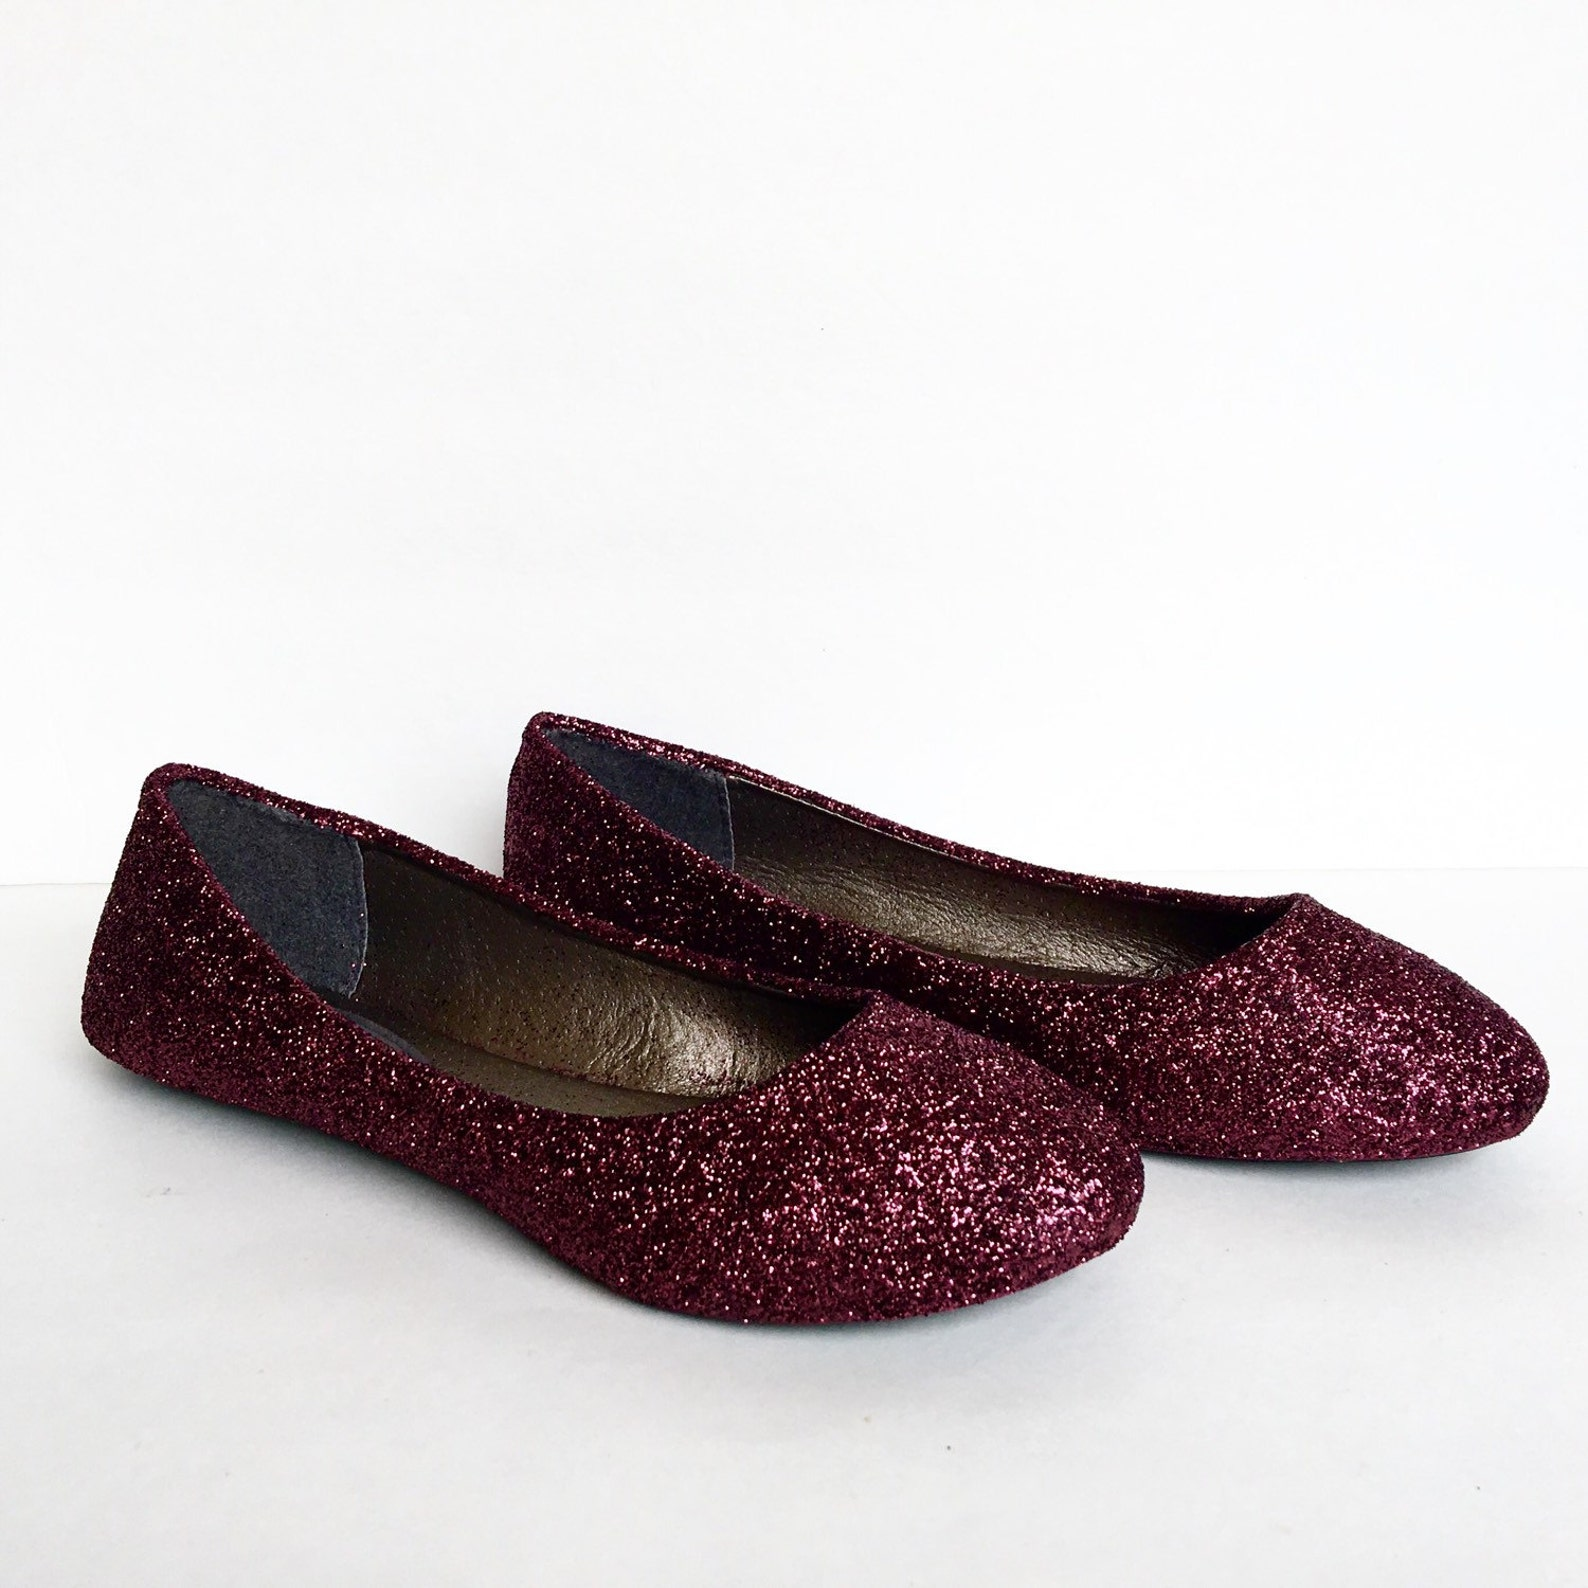 burgundy flats - dark red glitter shoes - maroon ballet flats - sparkly wedding shoes - red prom shoes - glitzy flats - wine red